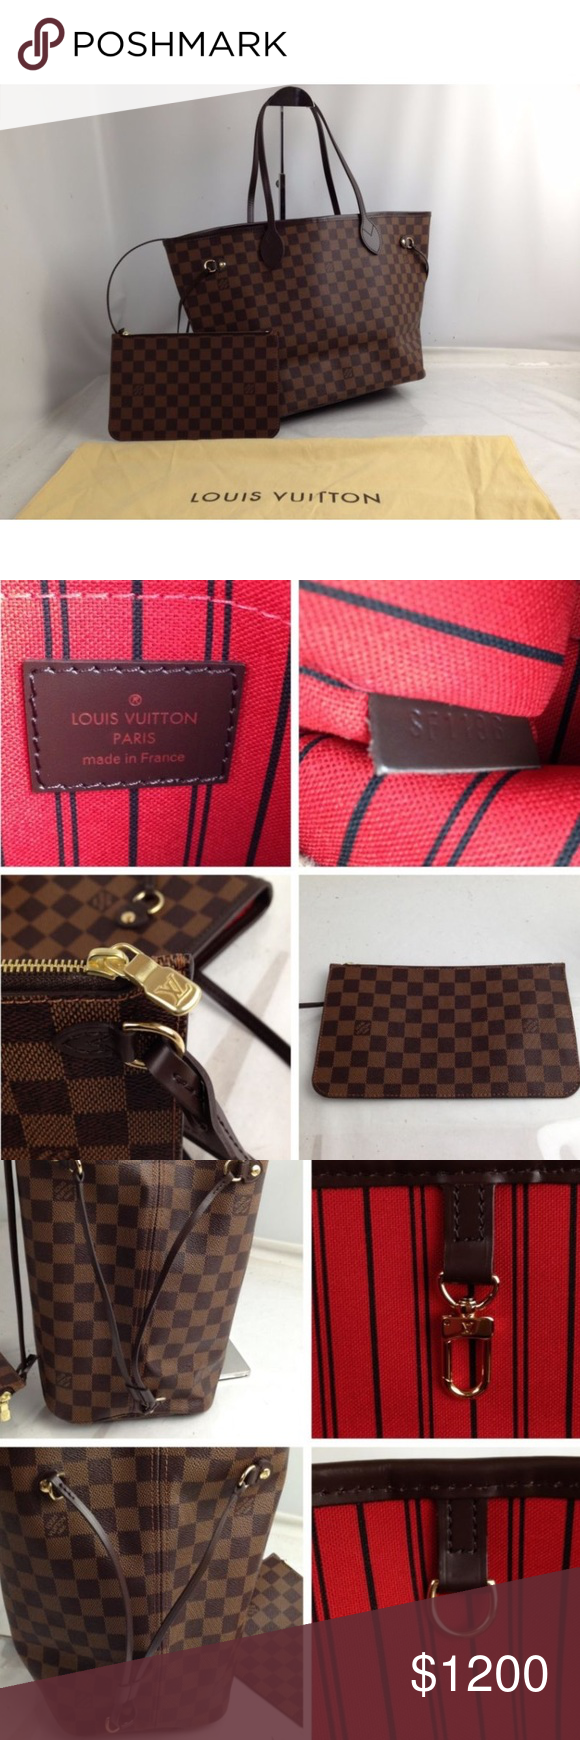 Louis Vuitton Damier Ebene Canvas Neverfull Mm Brand New Color Brown Serial Number Sf1196 Size Louis Vuitton Bag Louis Vuitton Louis Vuitton Damier Ebene